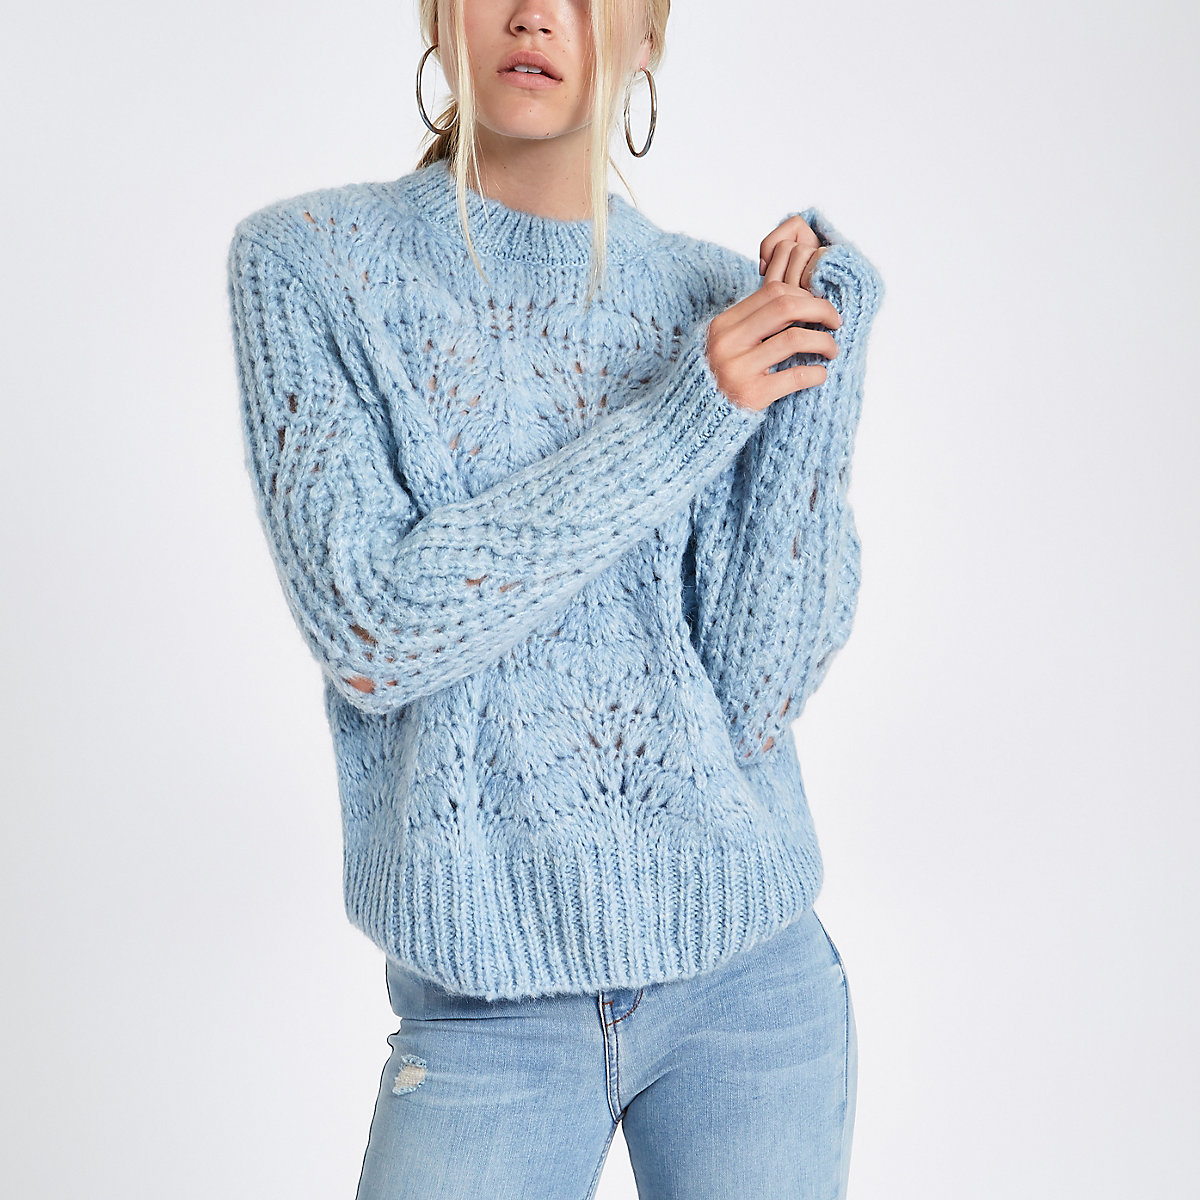 Light blue knitted jumper